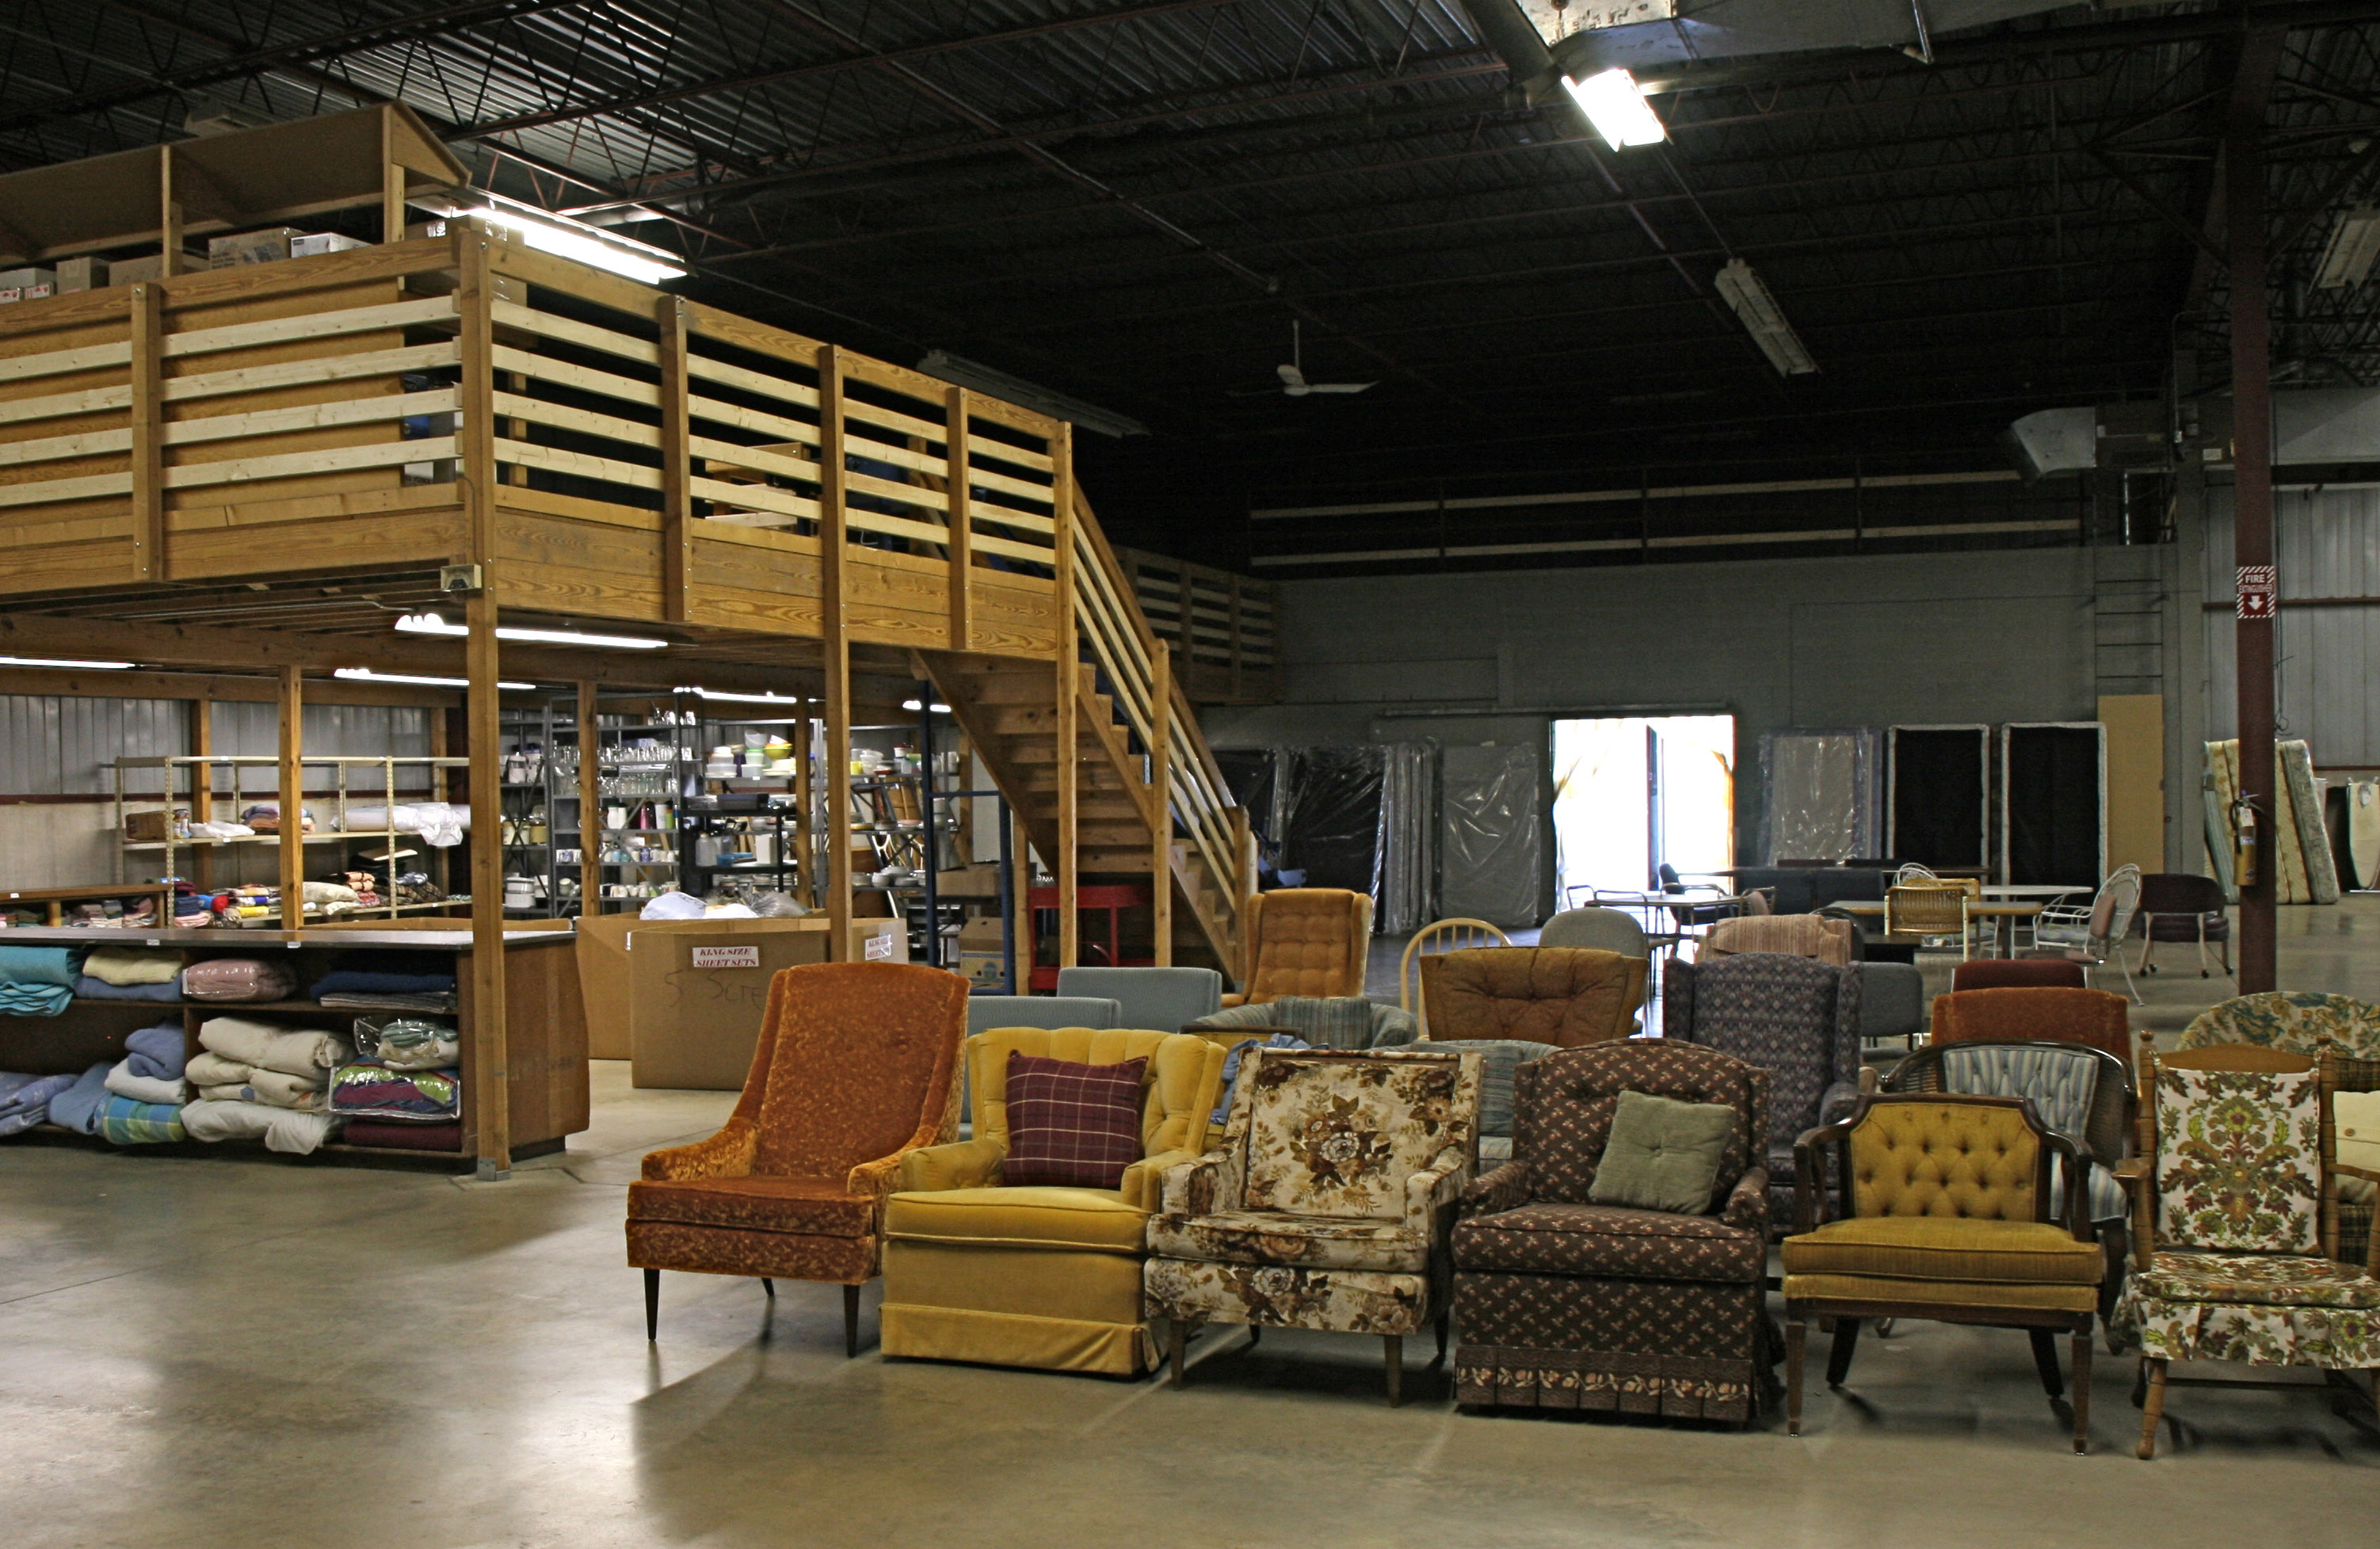 Mustard seed offers household goods for families facing for Furniture depot